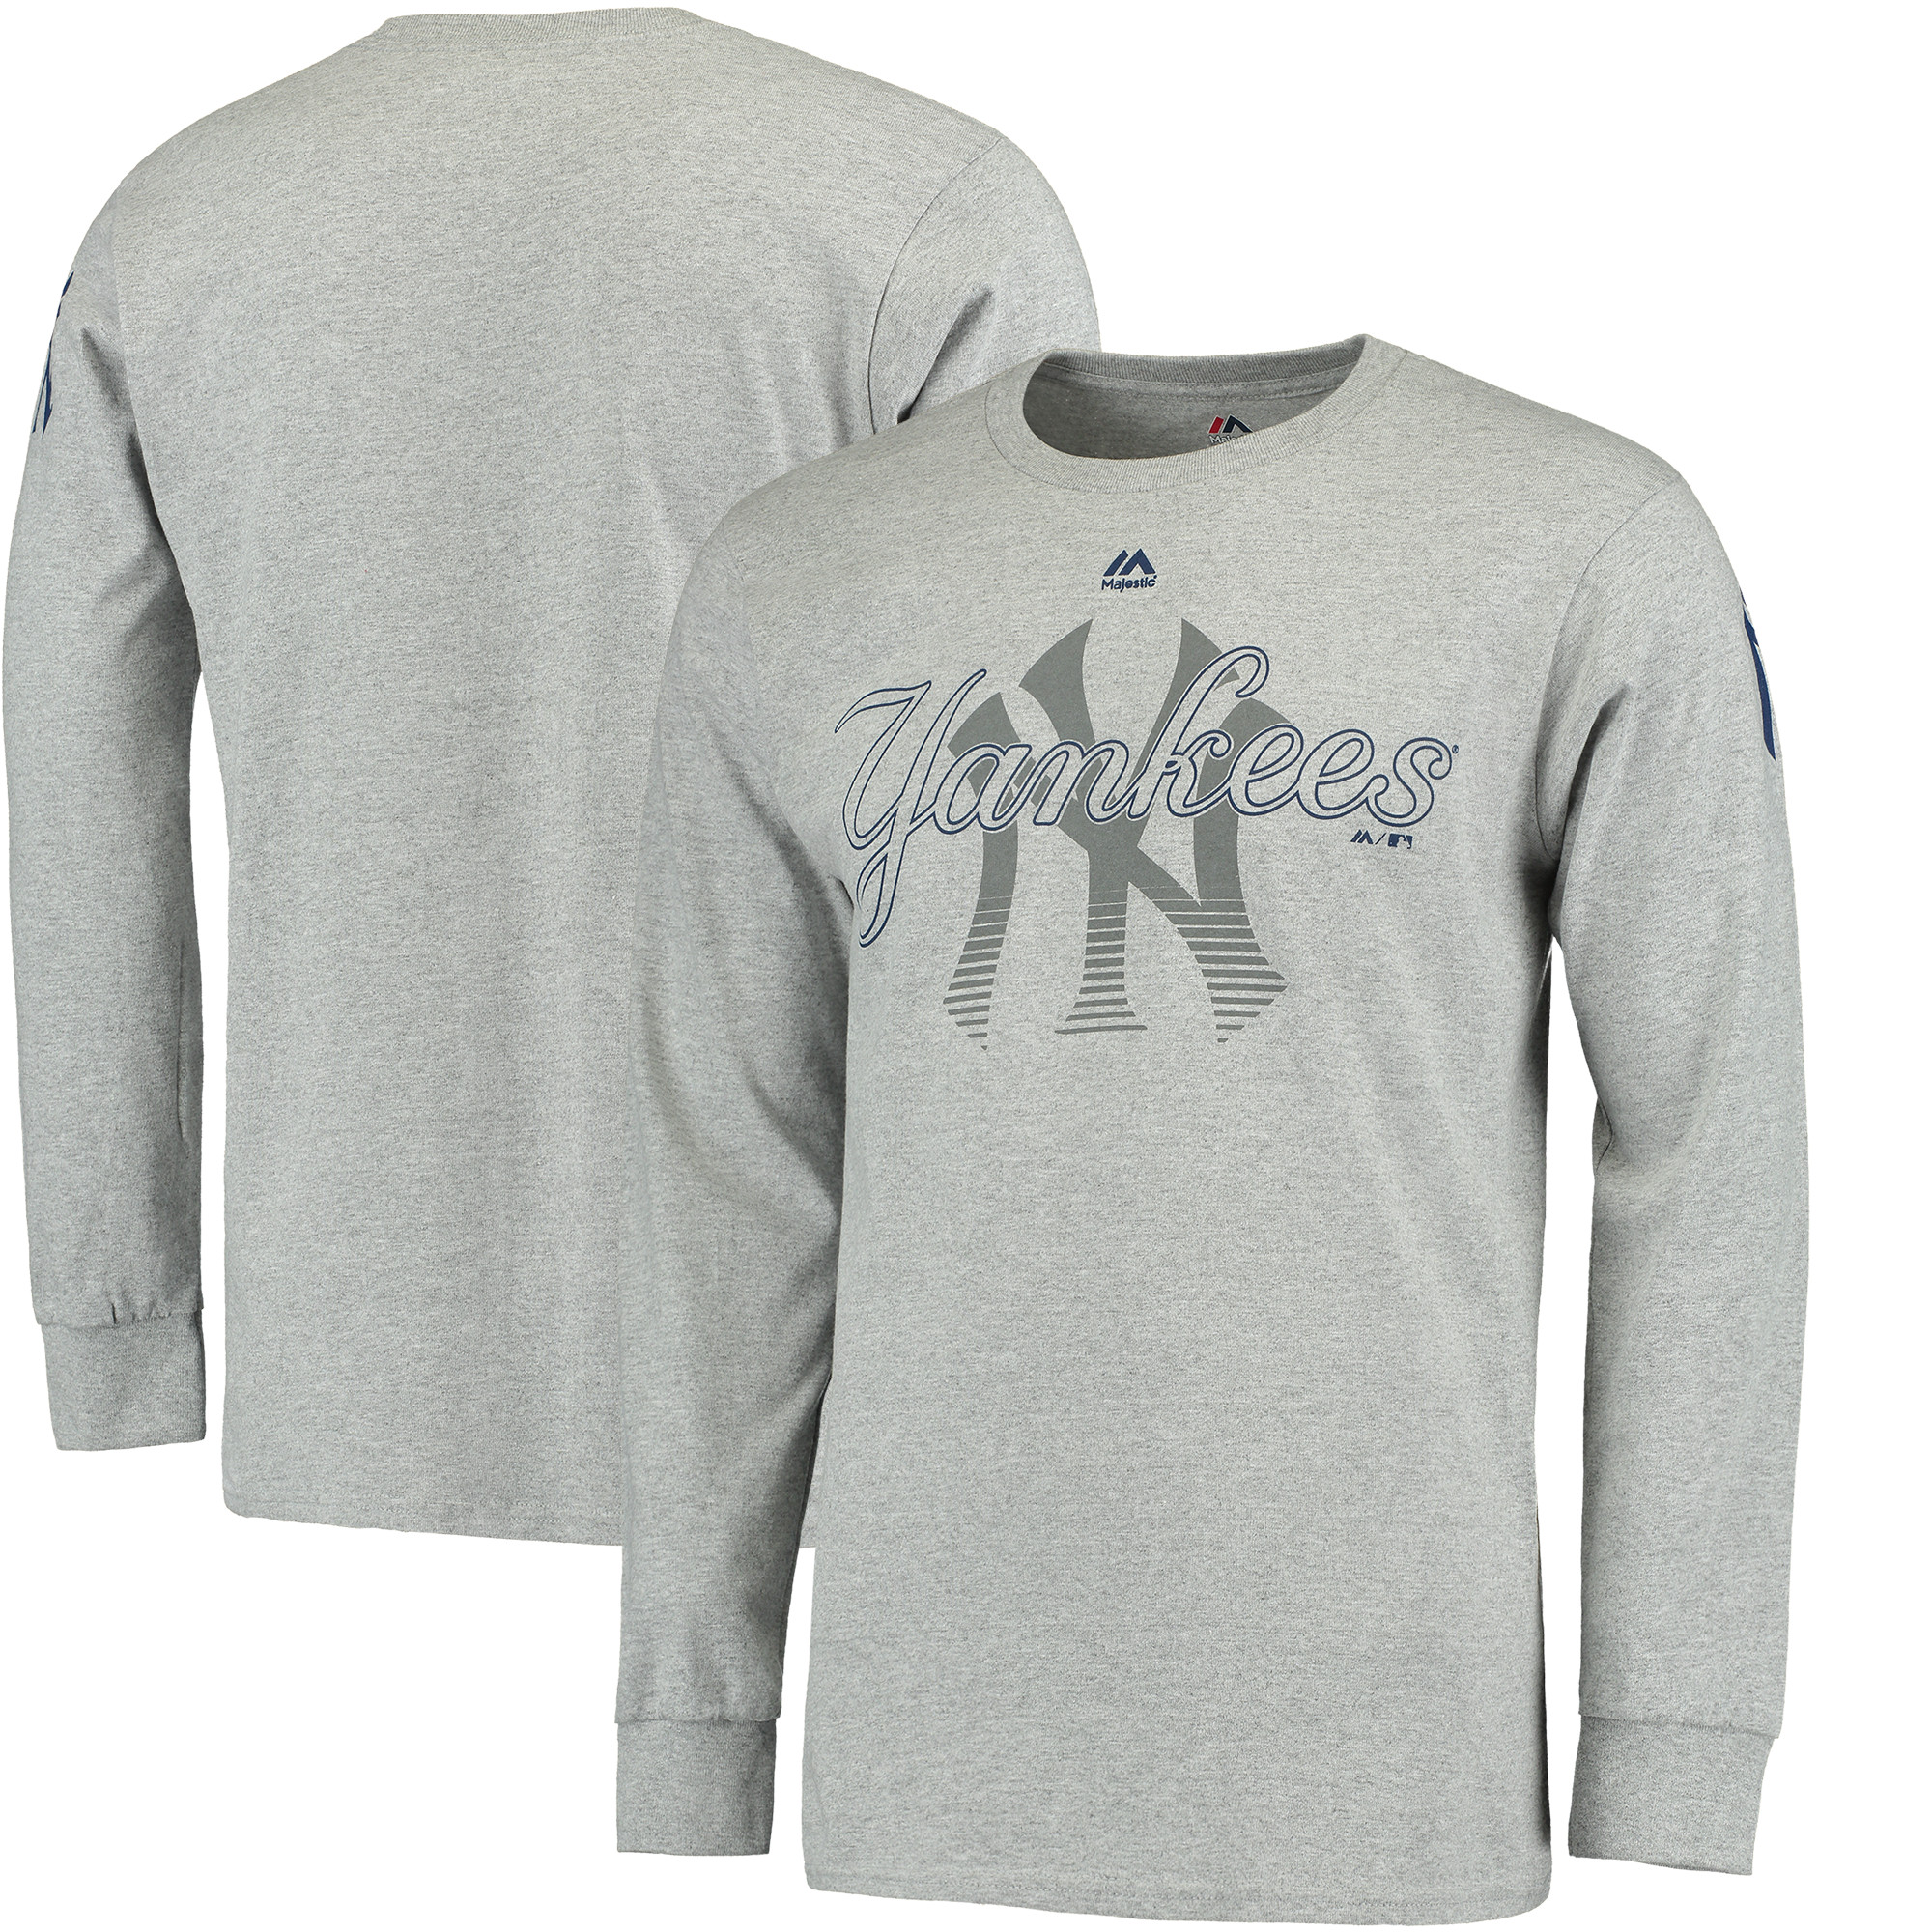 New York Yankees Majestic Big & Tall Two Hit Long Sleeve T-Shirt - Heathered Gray